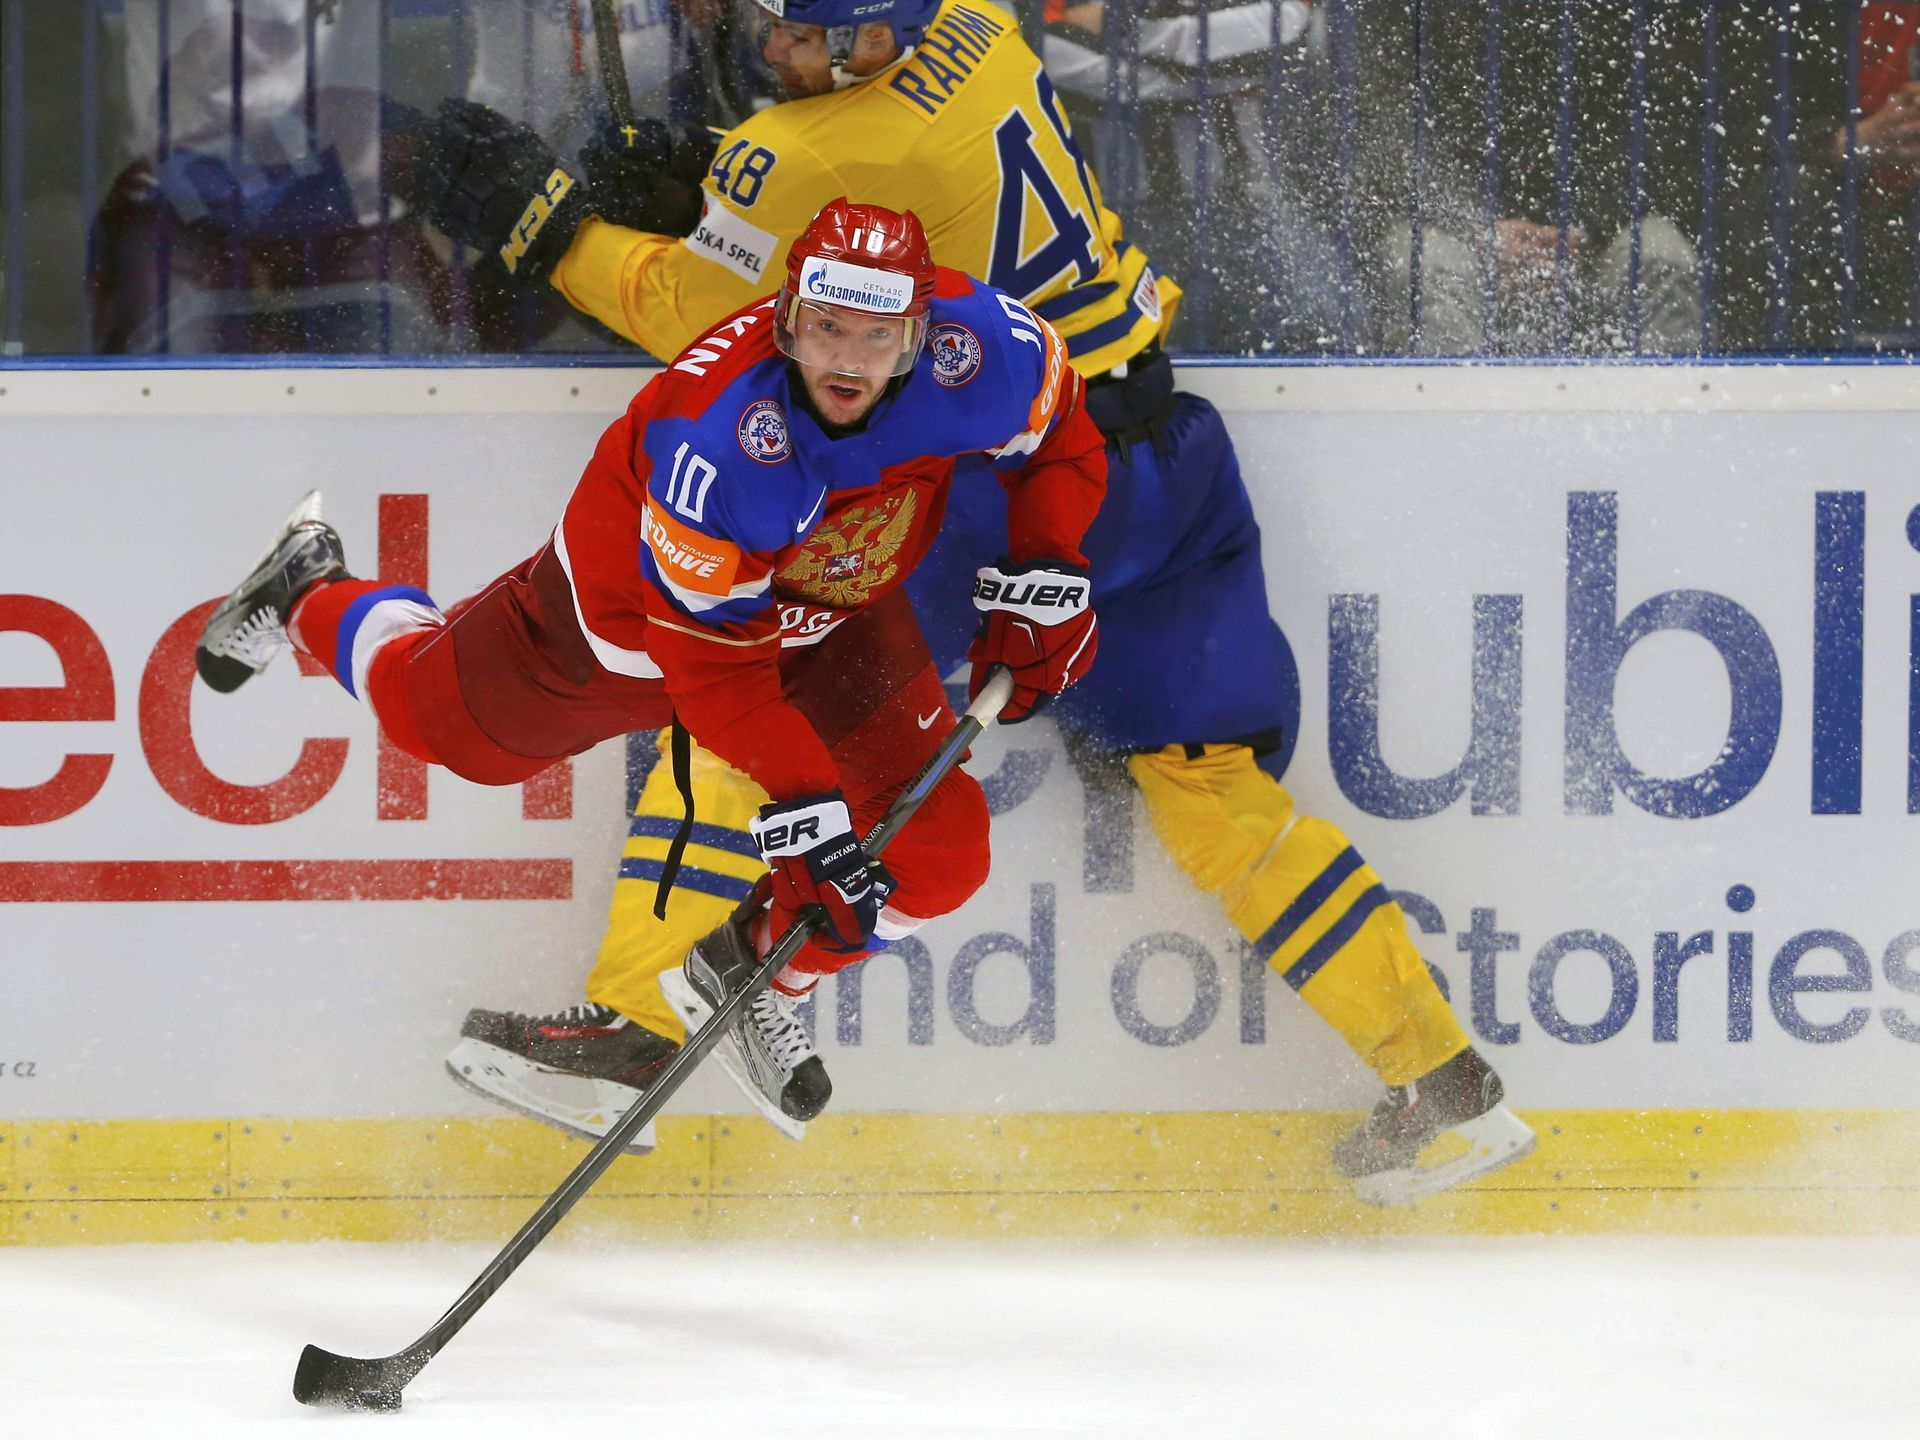 Russia's Sergei Mozyakin prepares to shoot past Sweden's Daniel Rahimi, top, during their Ice Hockey World Championship quarterfinals game in Ostrava, Czech Republic.  Laszlo Balogh, Reuters